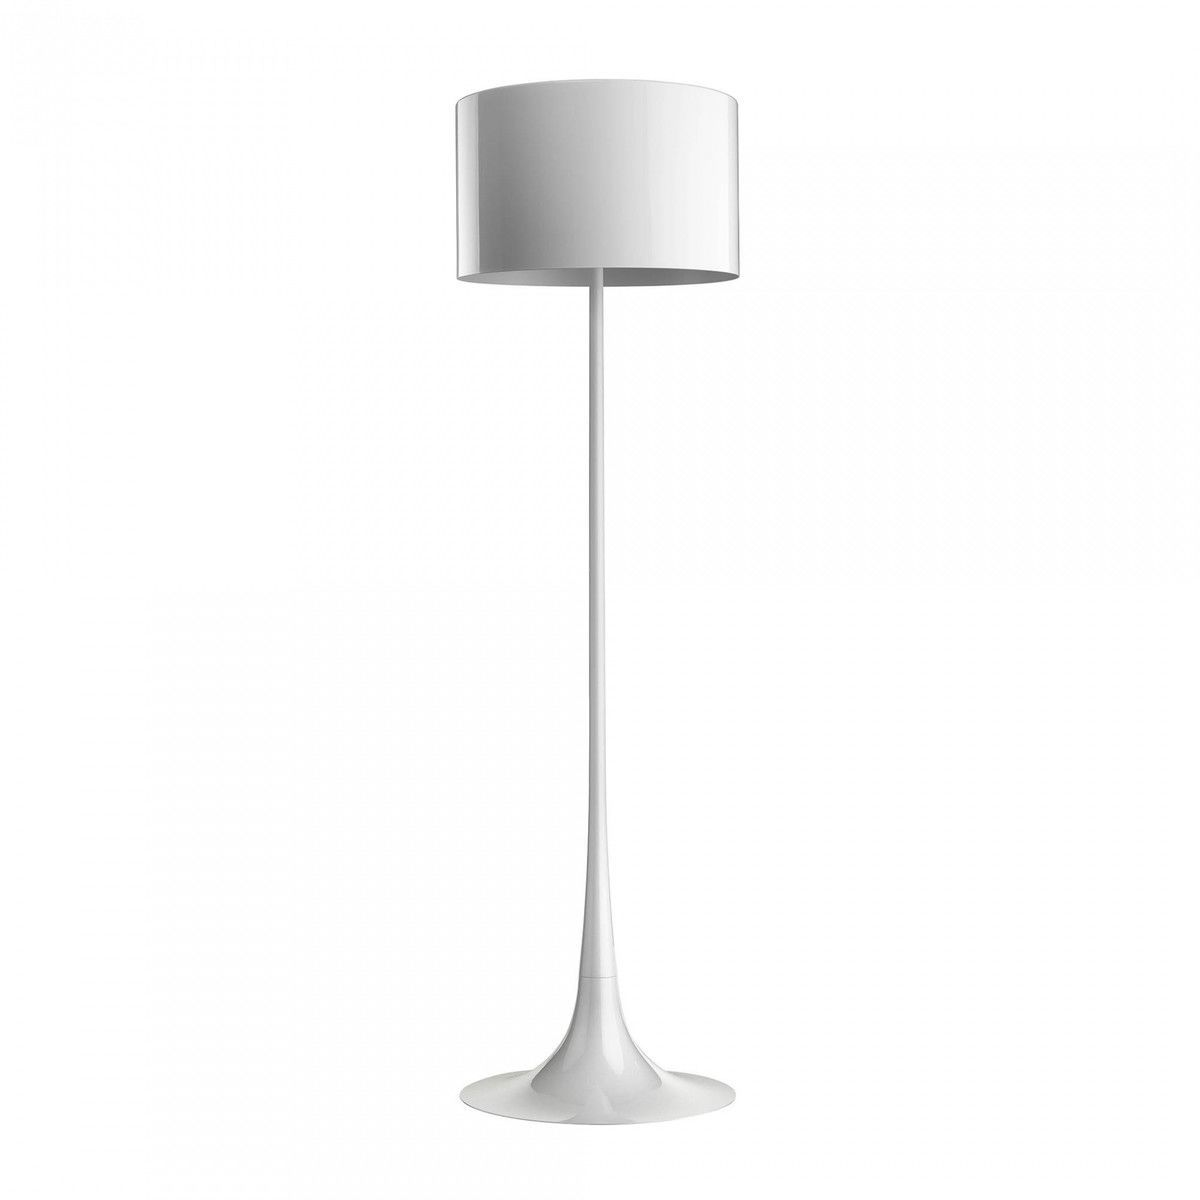 Spun Light F Eco Floor Lamp Flos